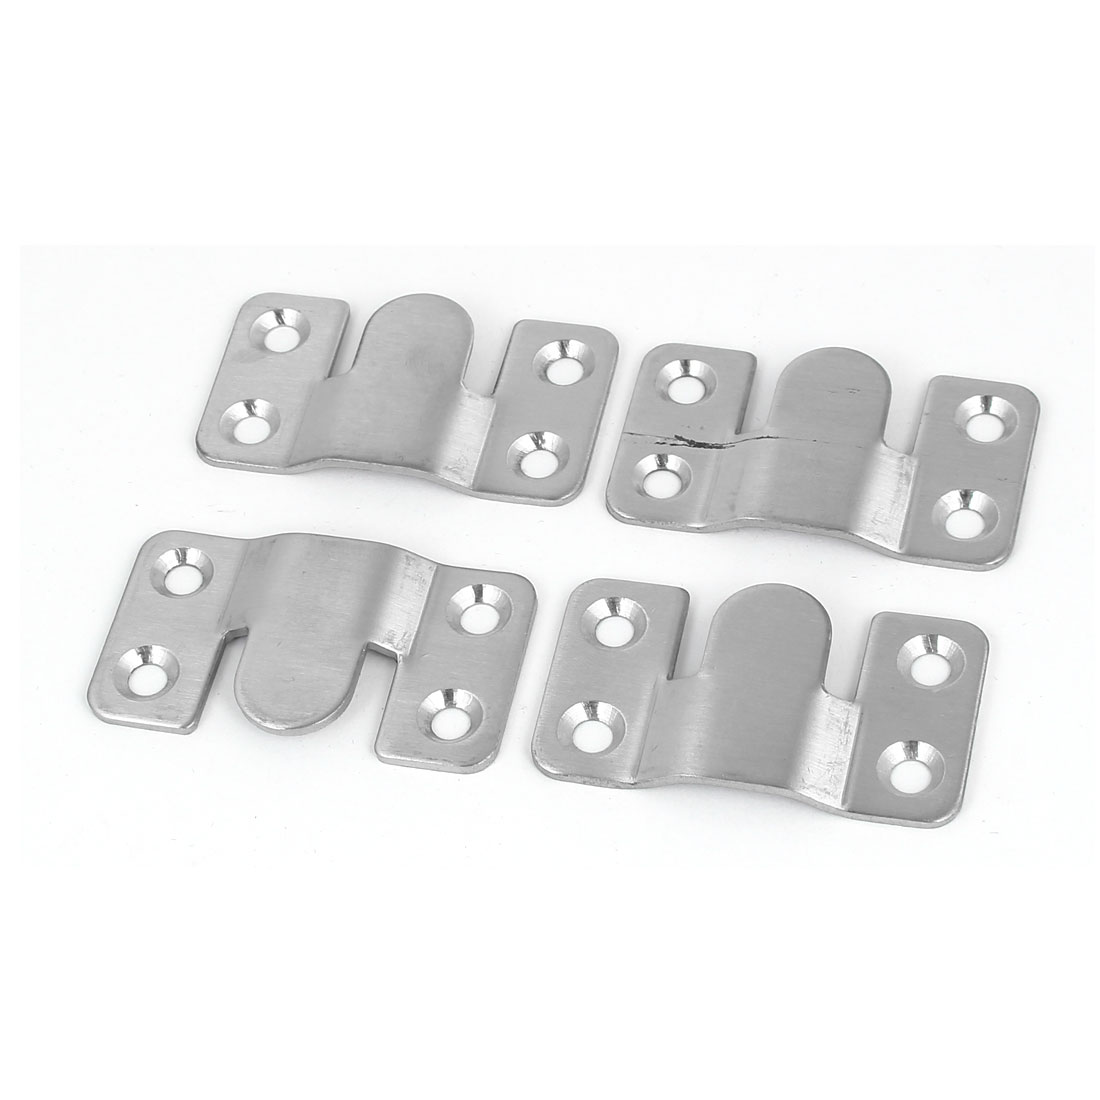 53mm x 30mm Iron Photo Frame Sofa Sectional Connector Bracket 4pcs - image 3 of 3